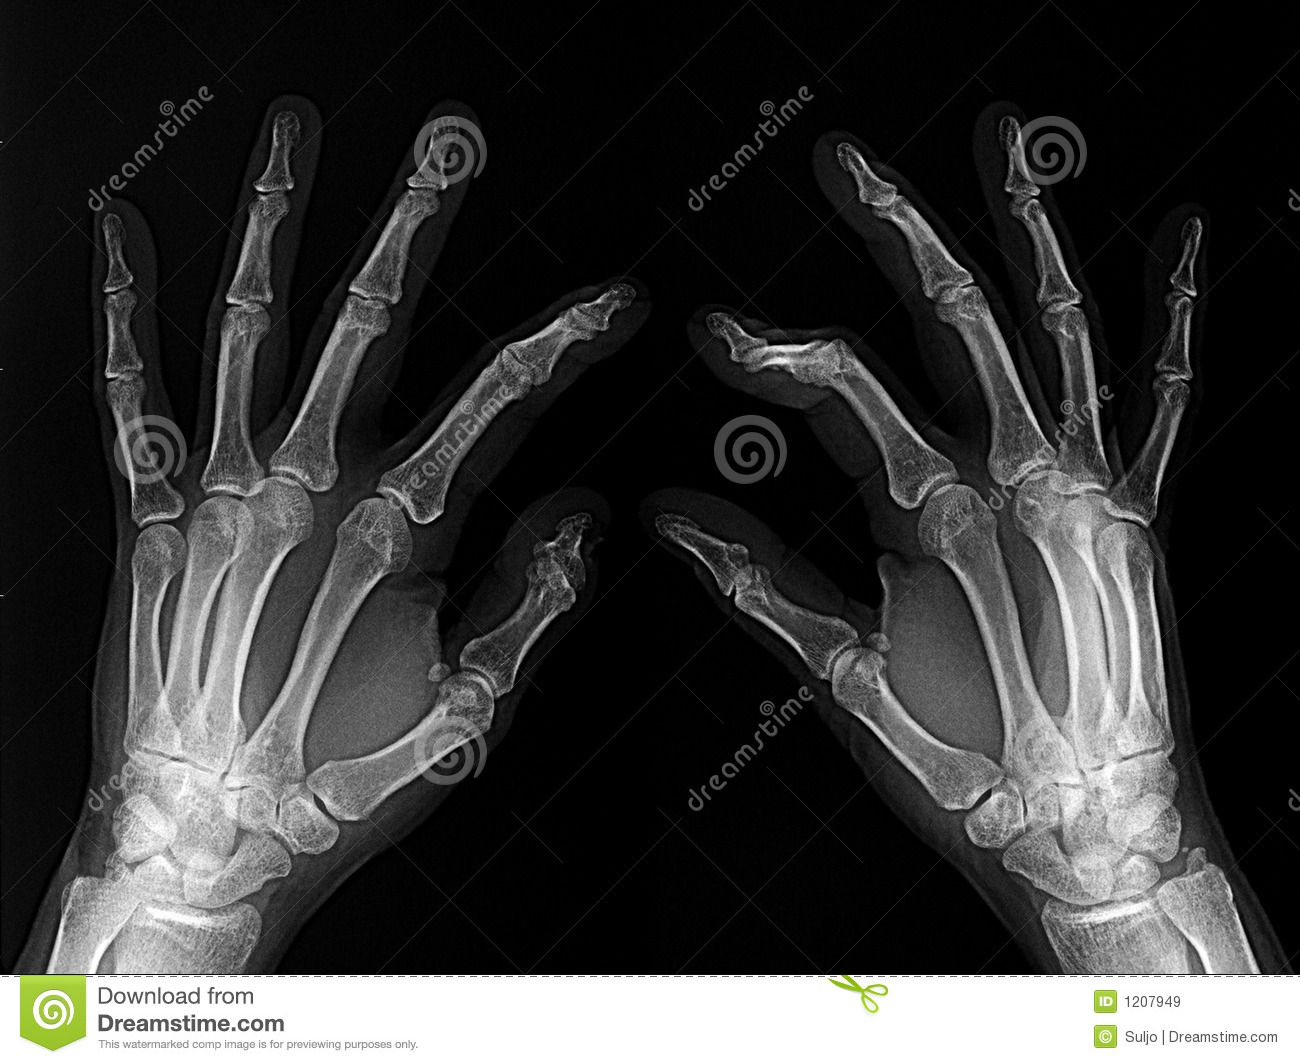 X-rayed hands